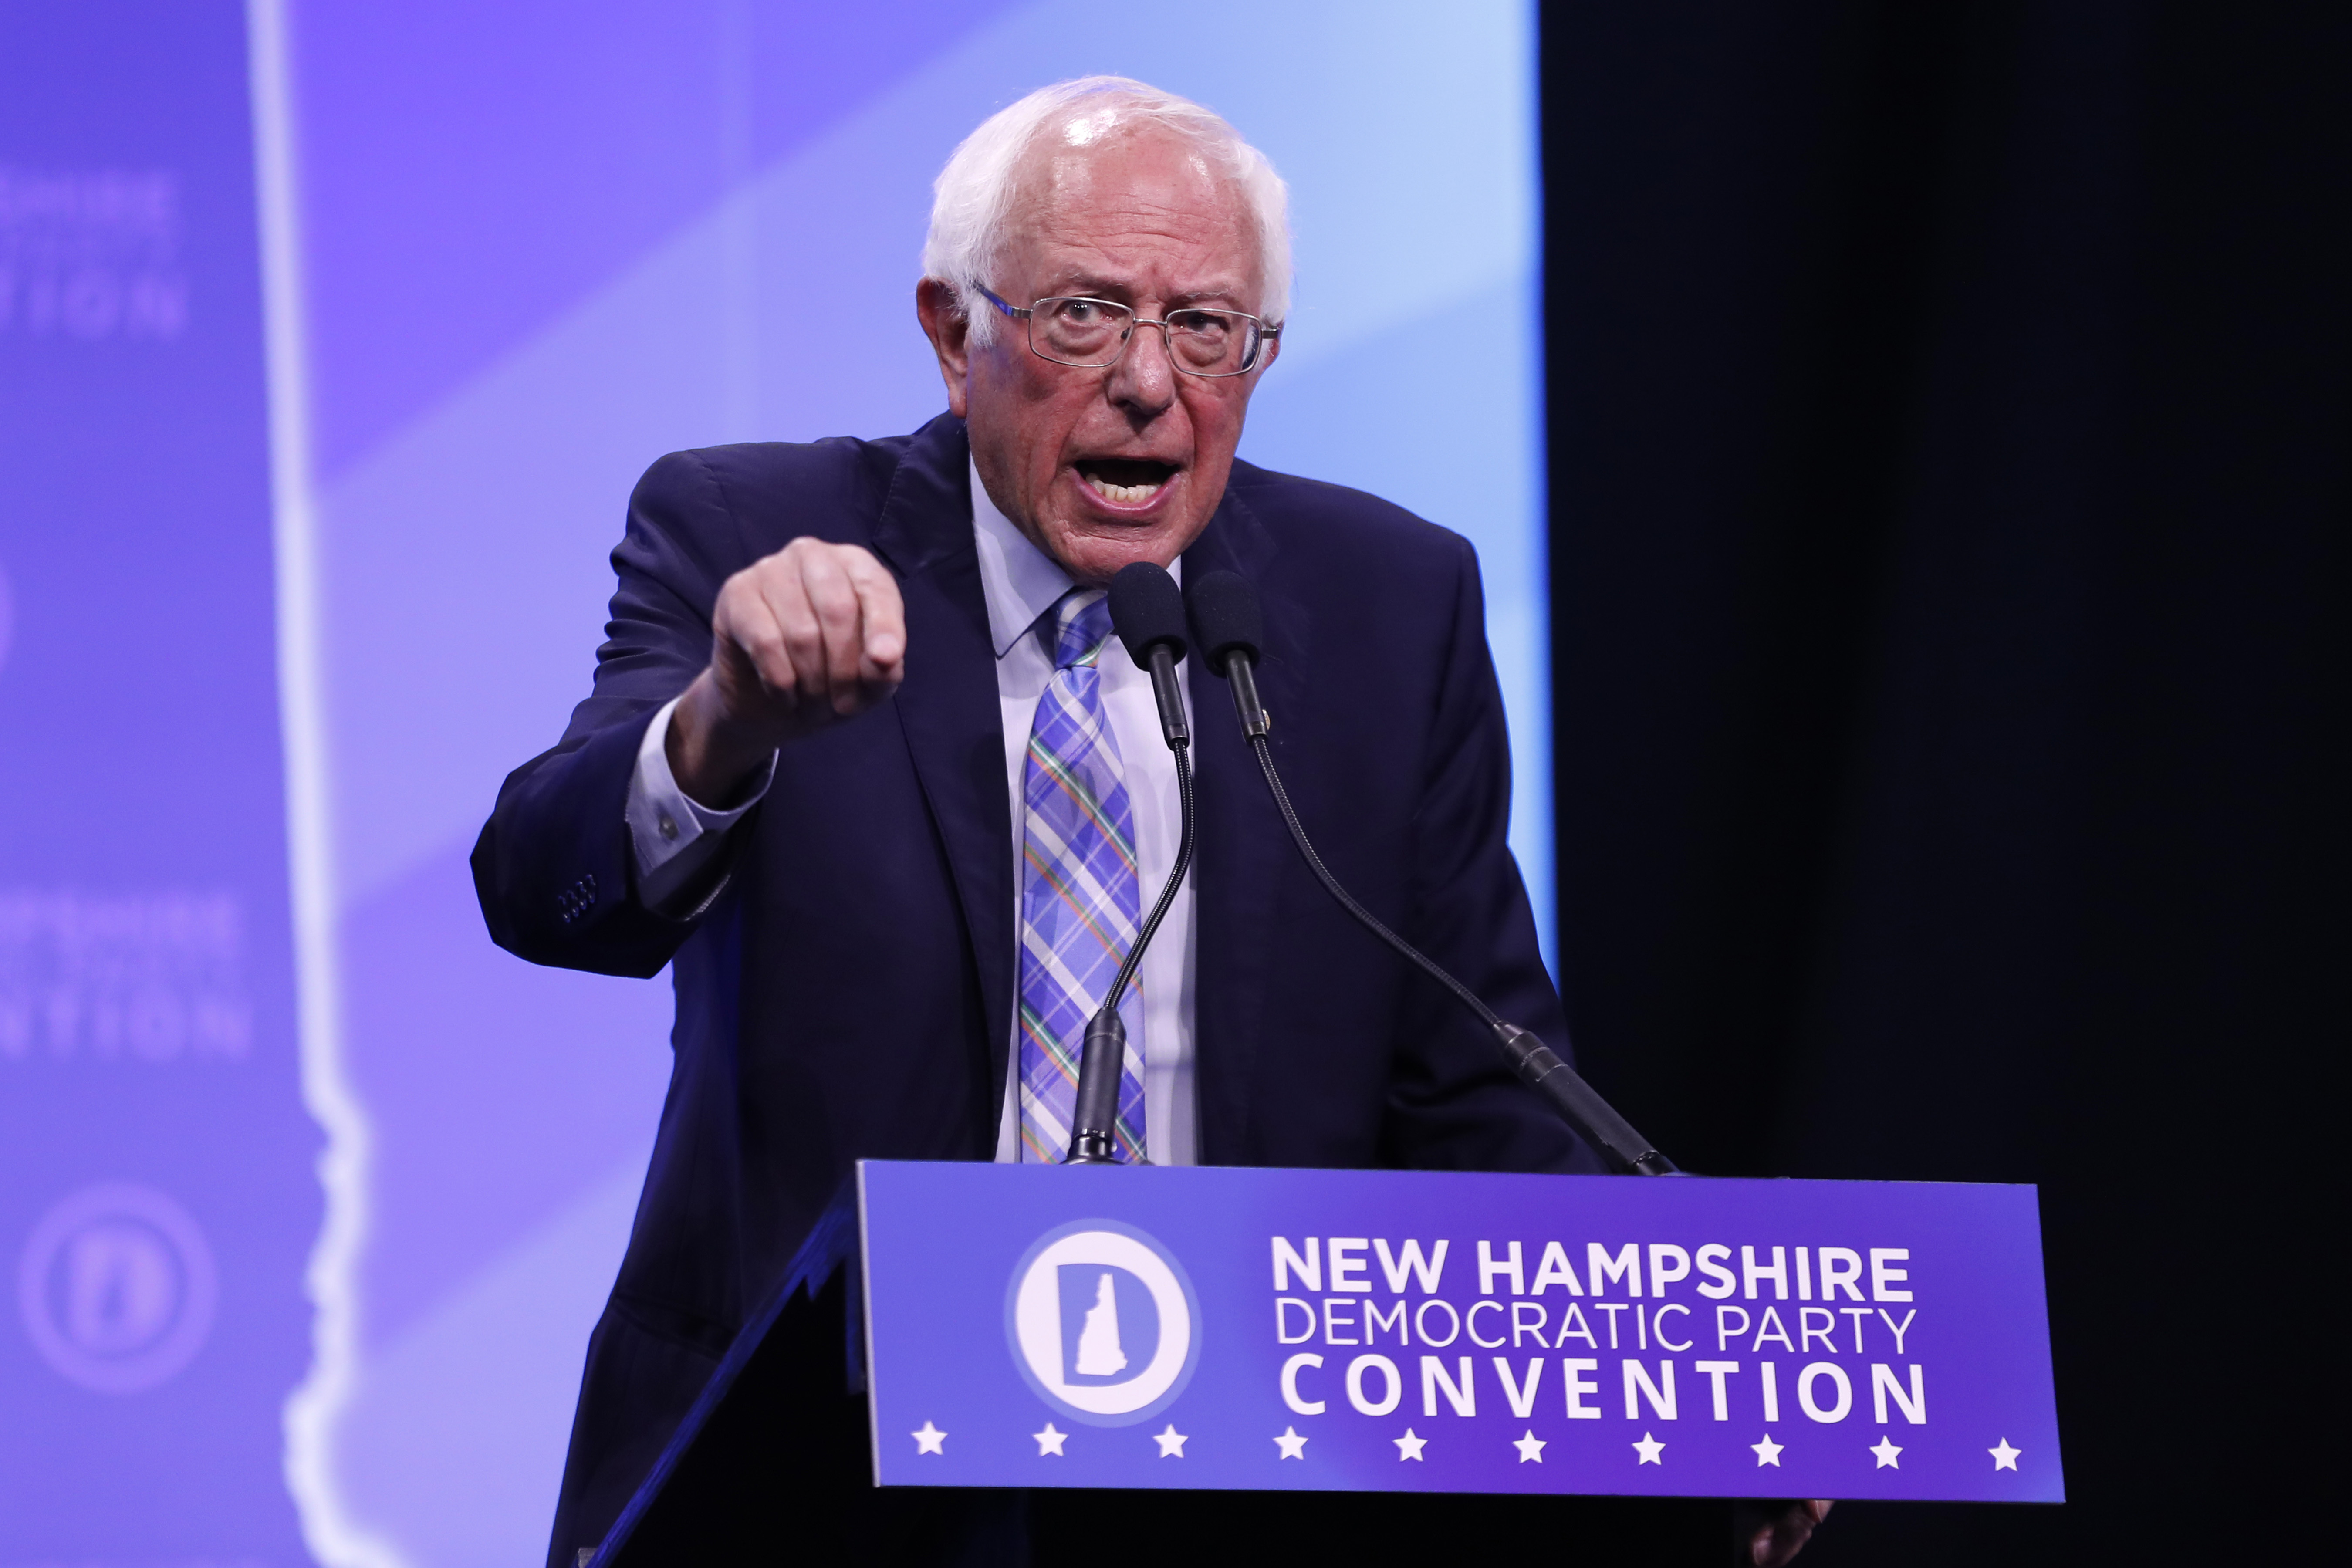 In reshuffle, top 2 Sanders aides in N.H. are out